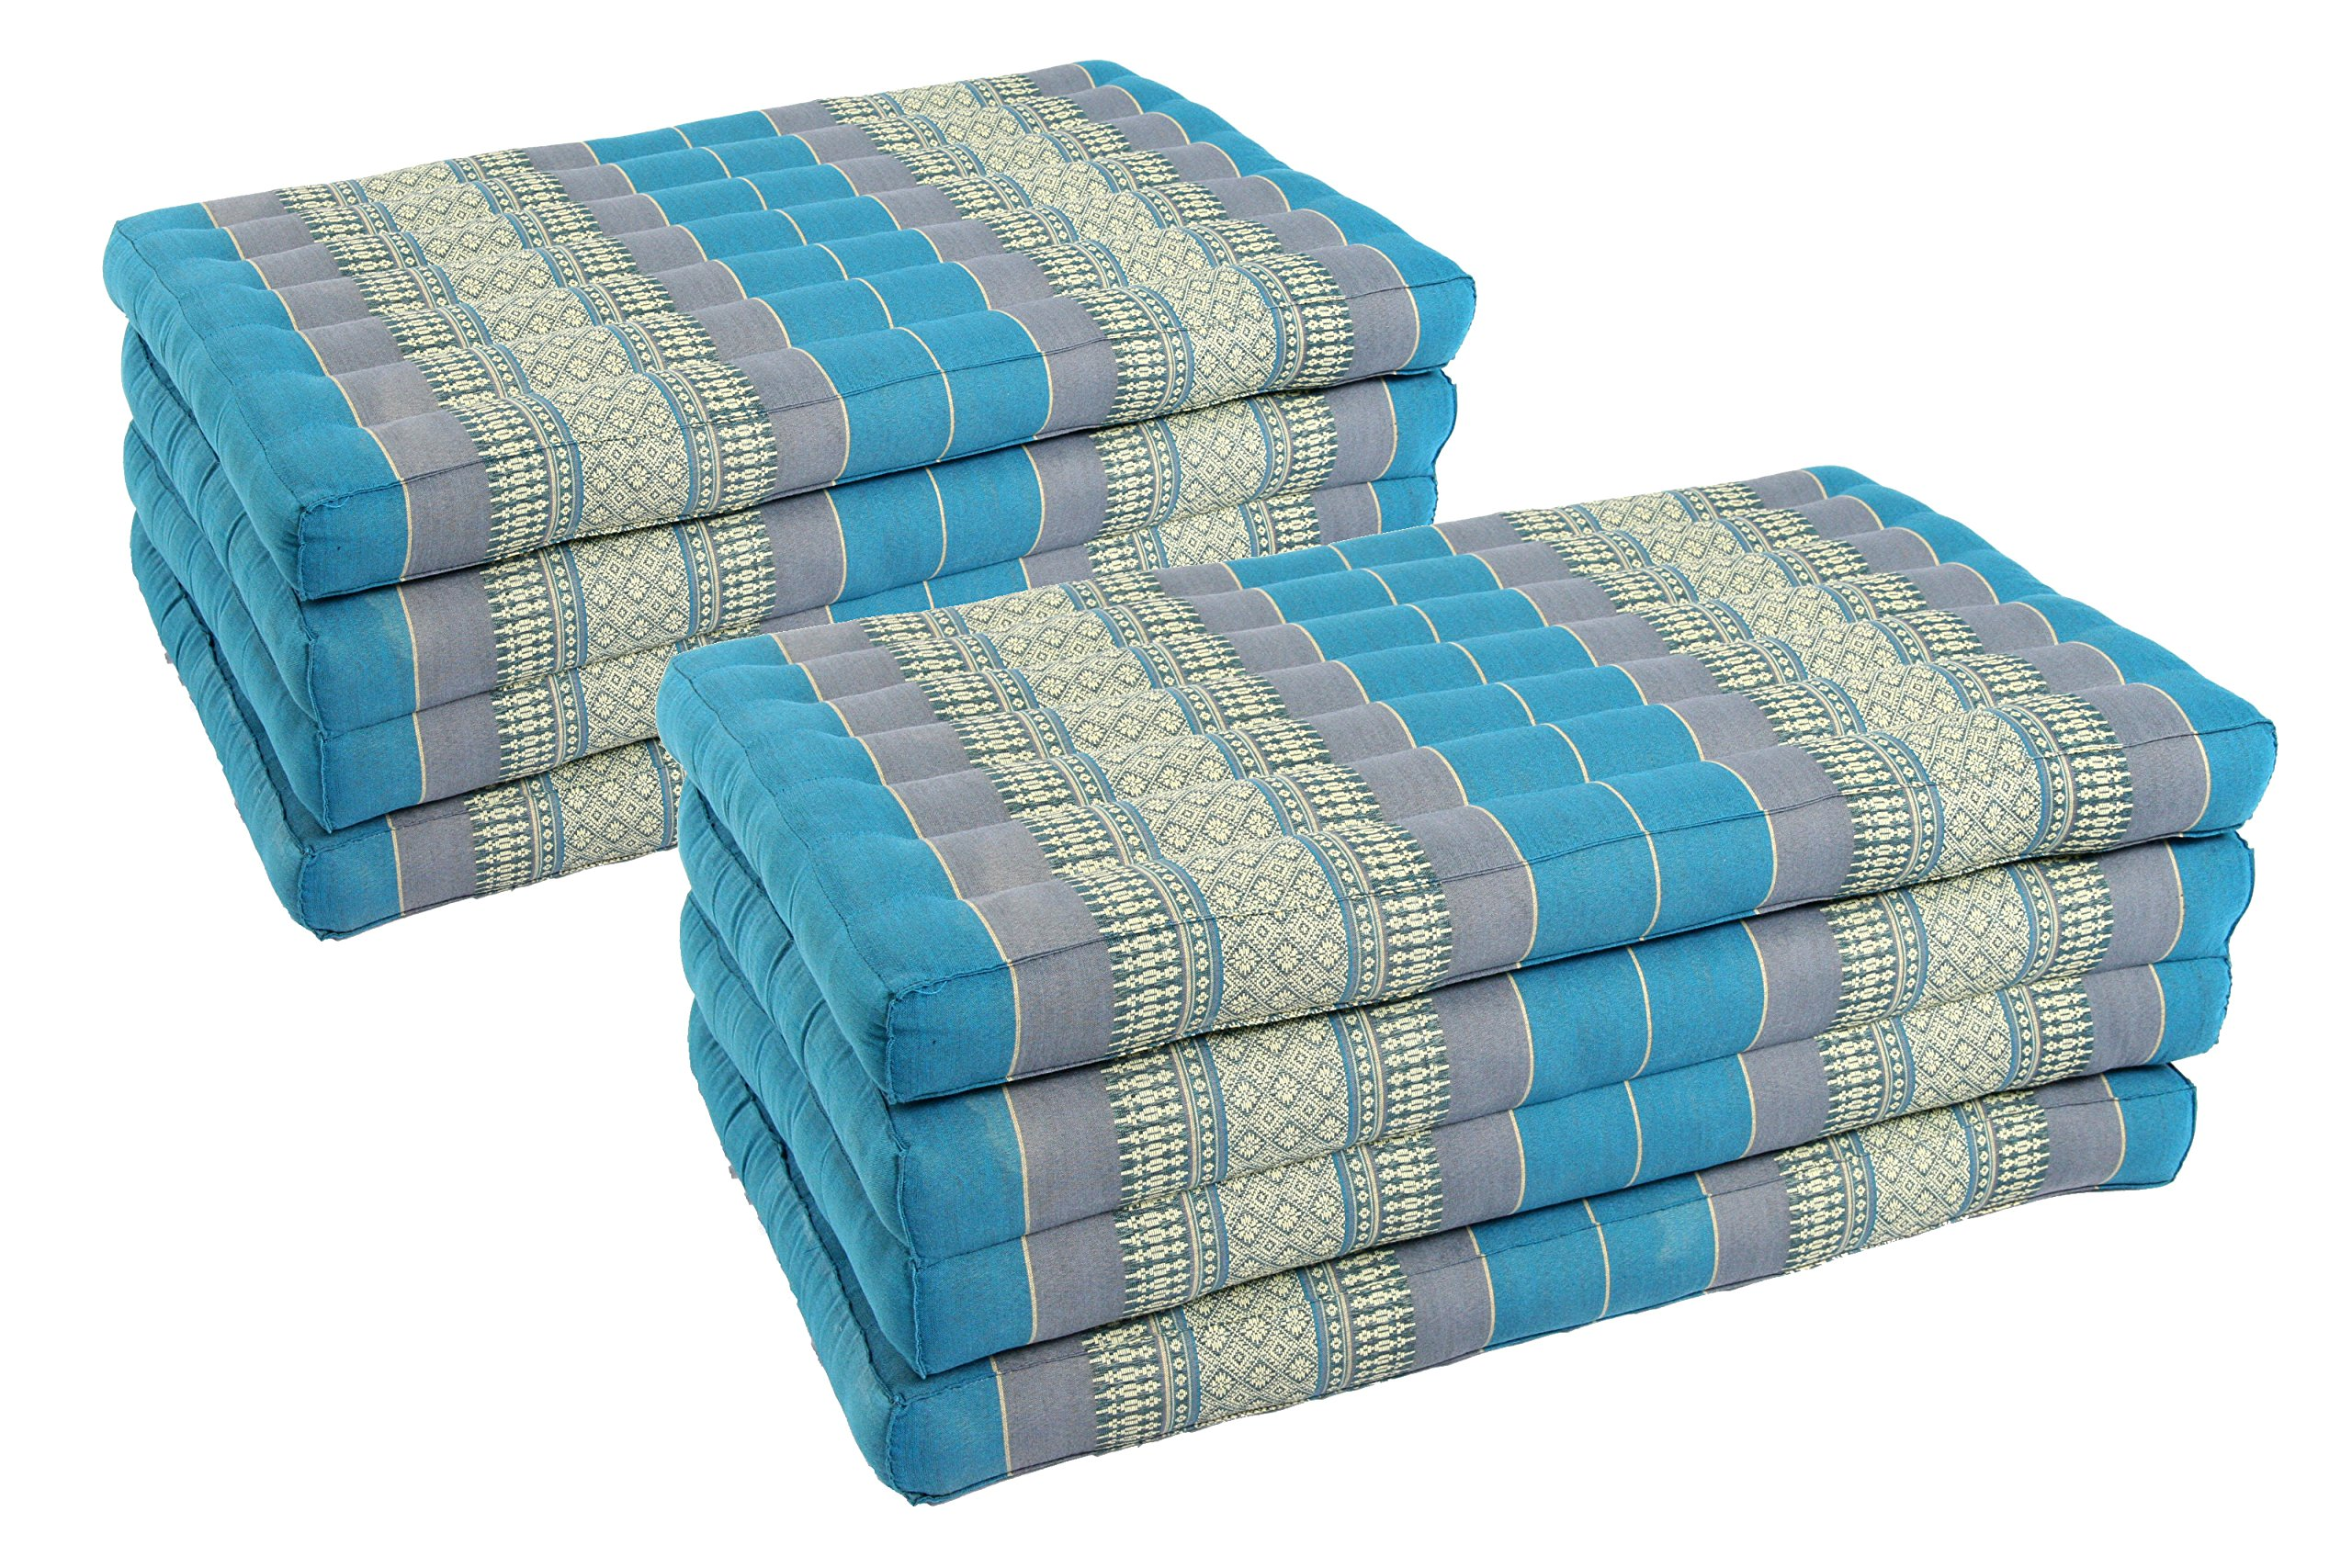 Pack: 2x 4-Fold Mattress (79x32inches), Traditional Thai Design SkyBlues, (100% Kapok filling)